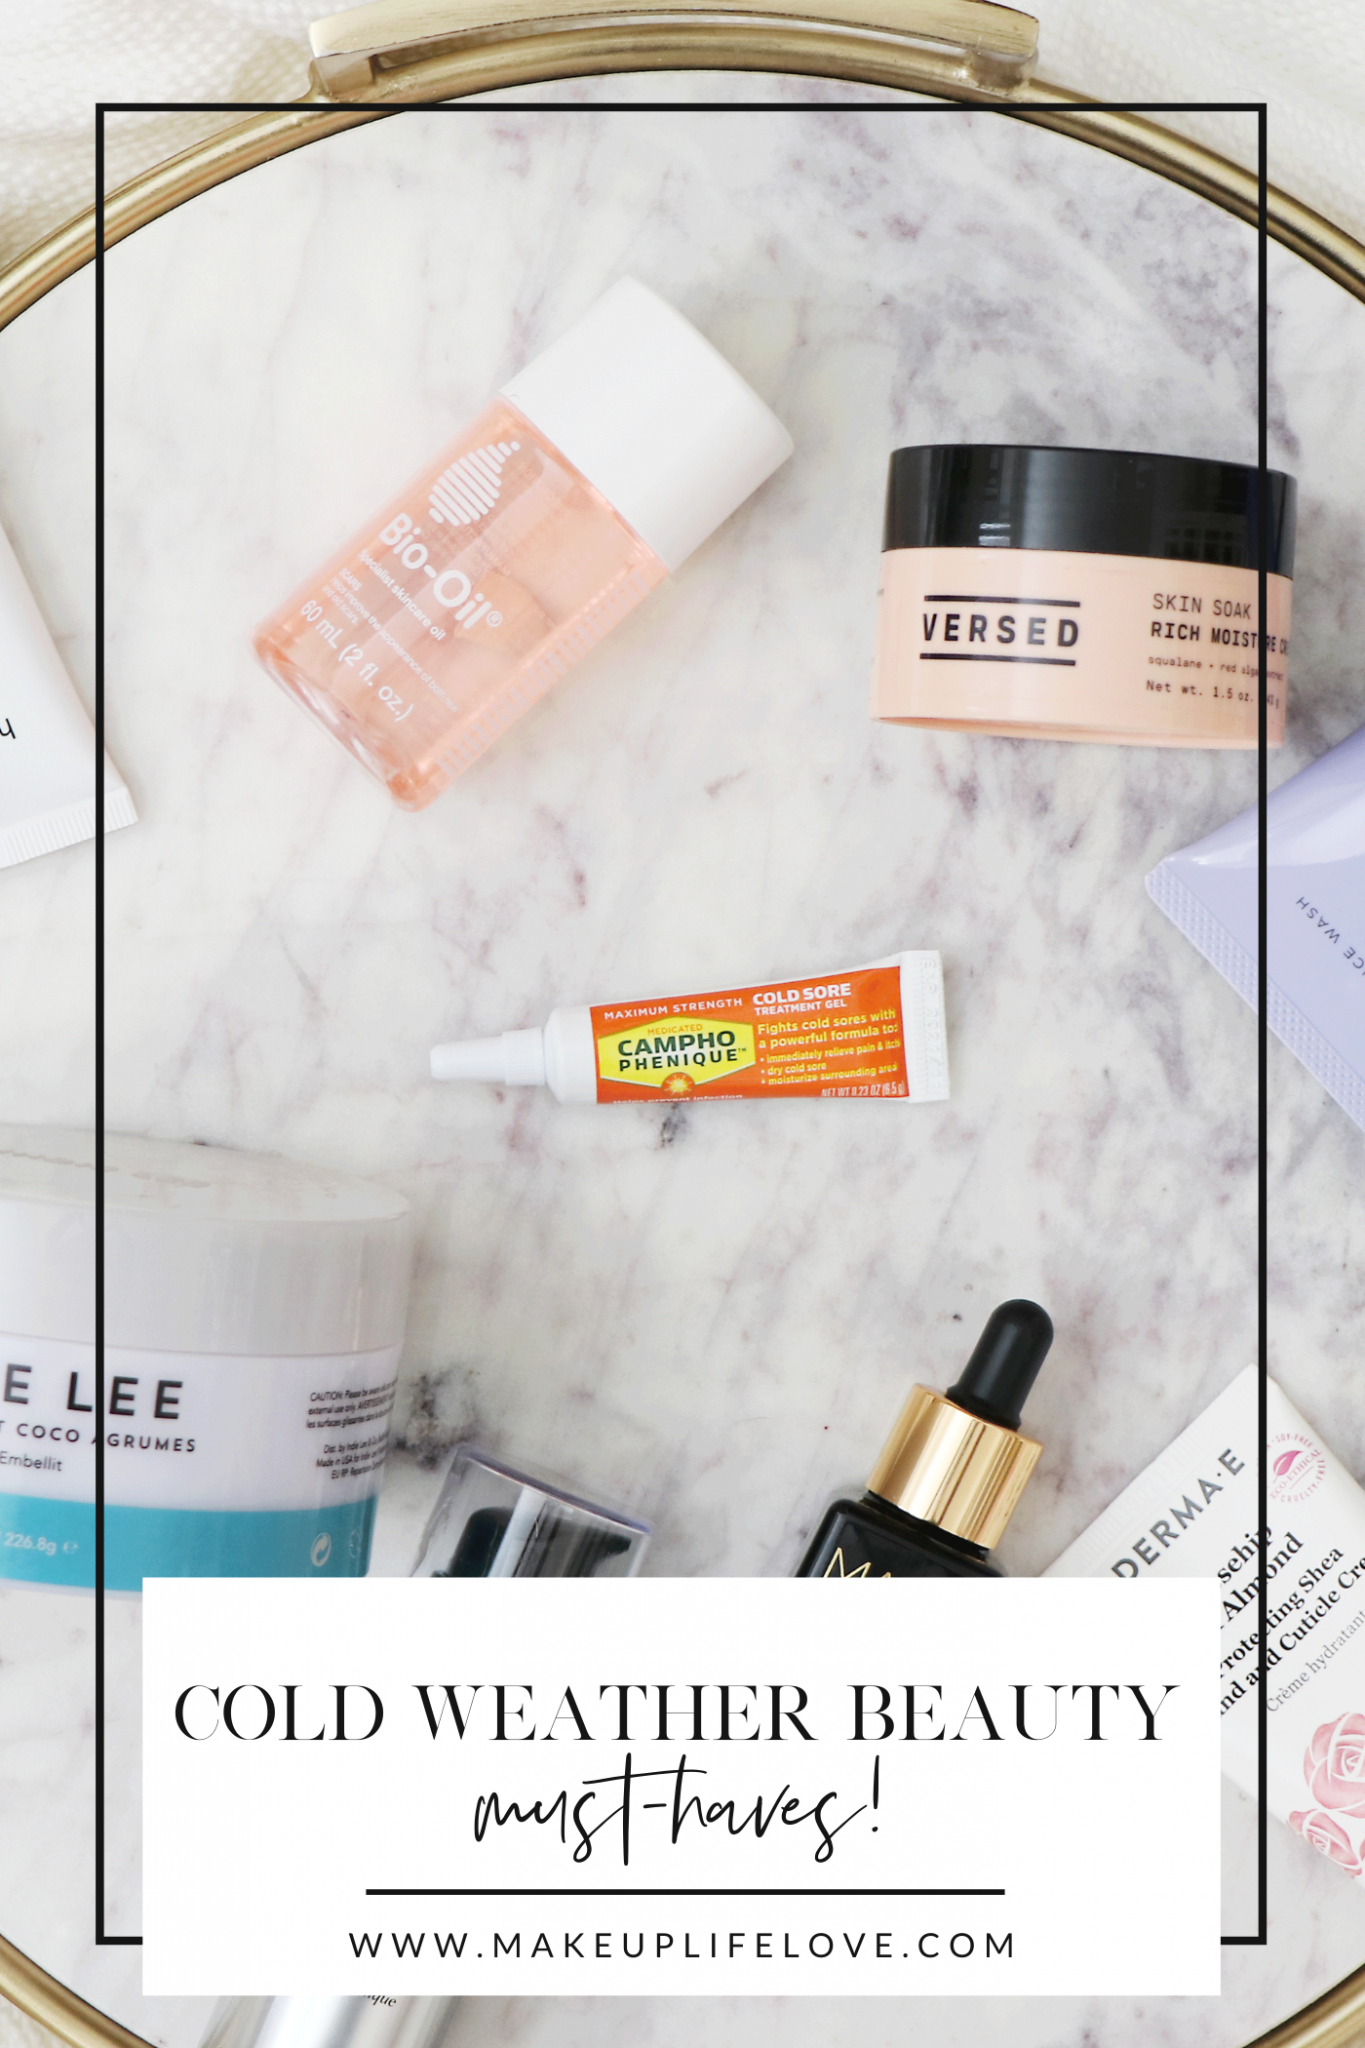 Looking to be prepared for cold weather this year? Los Angeles Blogger Jamie Lewis is sharing her top tips to stay hydrated and cold sore free with her cold weather beauty must haves here!